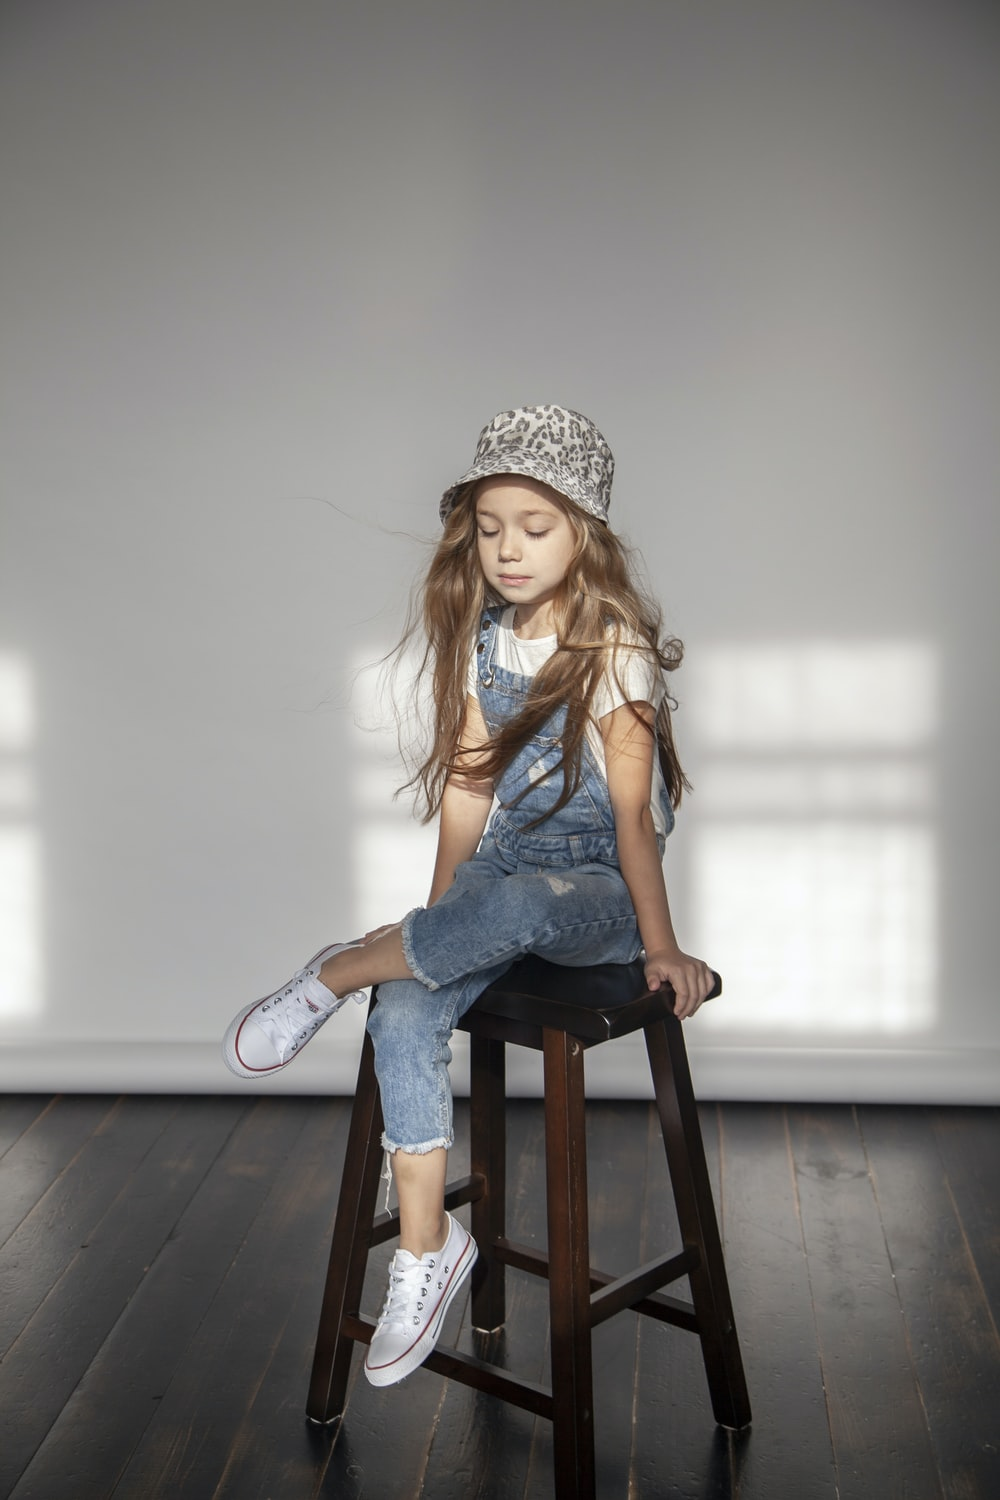 girl in blue overalls sitting on wooden stool